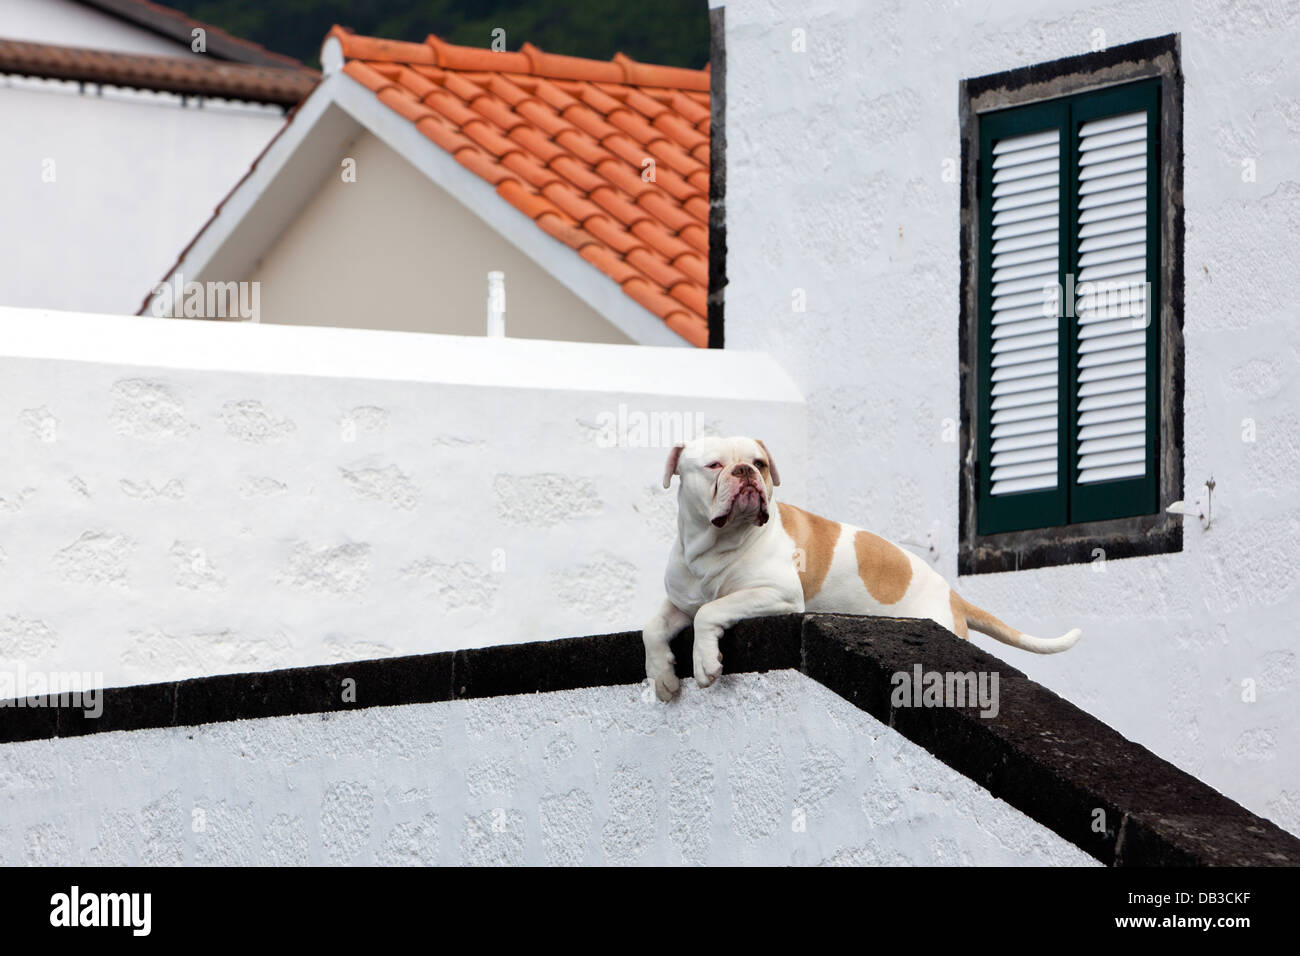 Attentive watchdog, presumably a Mastiff breed, guarding a house entrance. - Stock Image